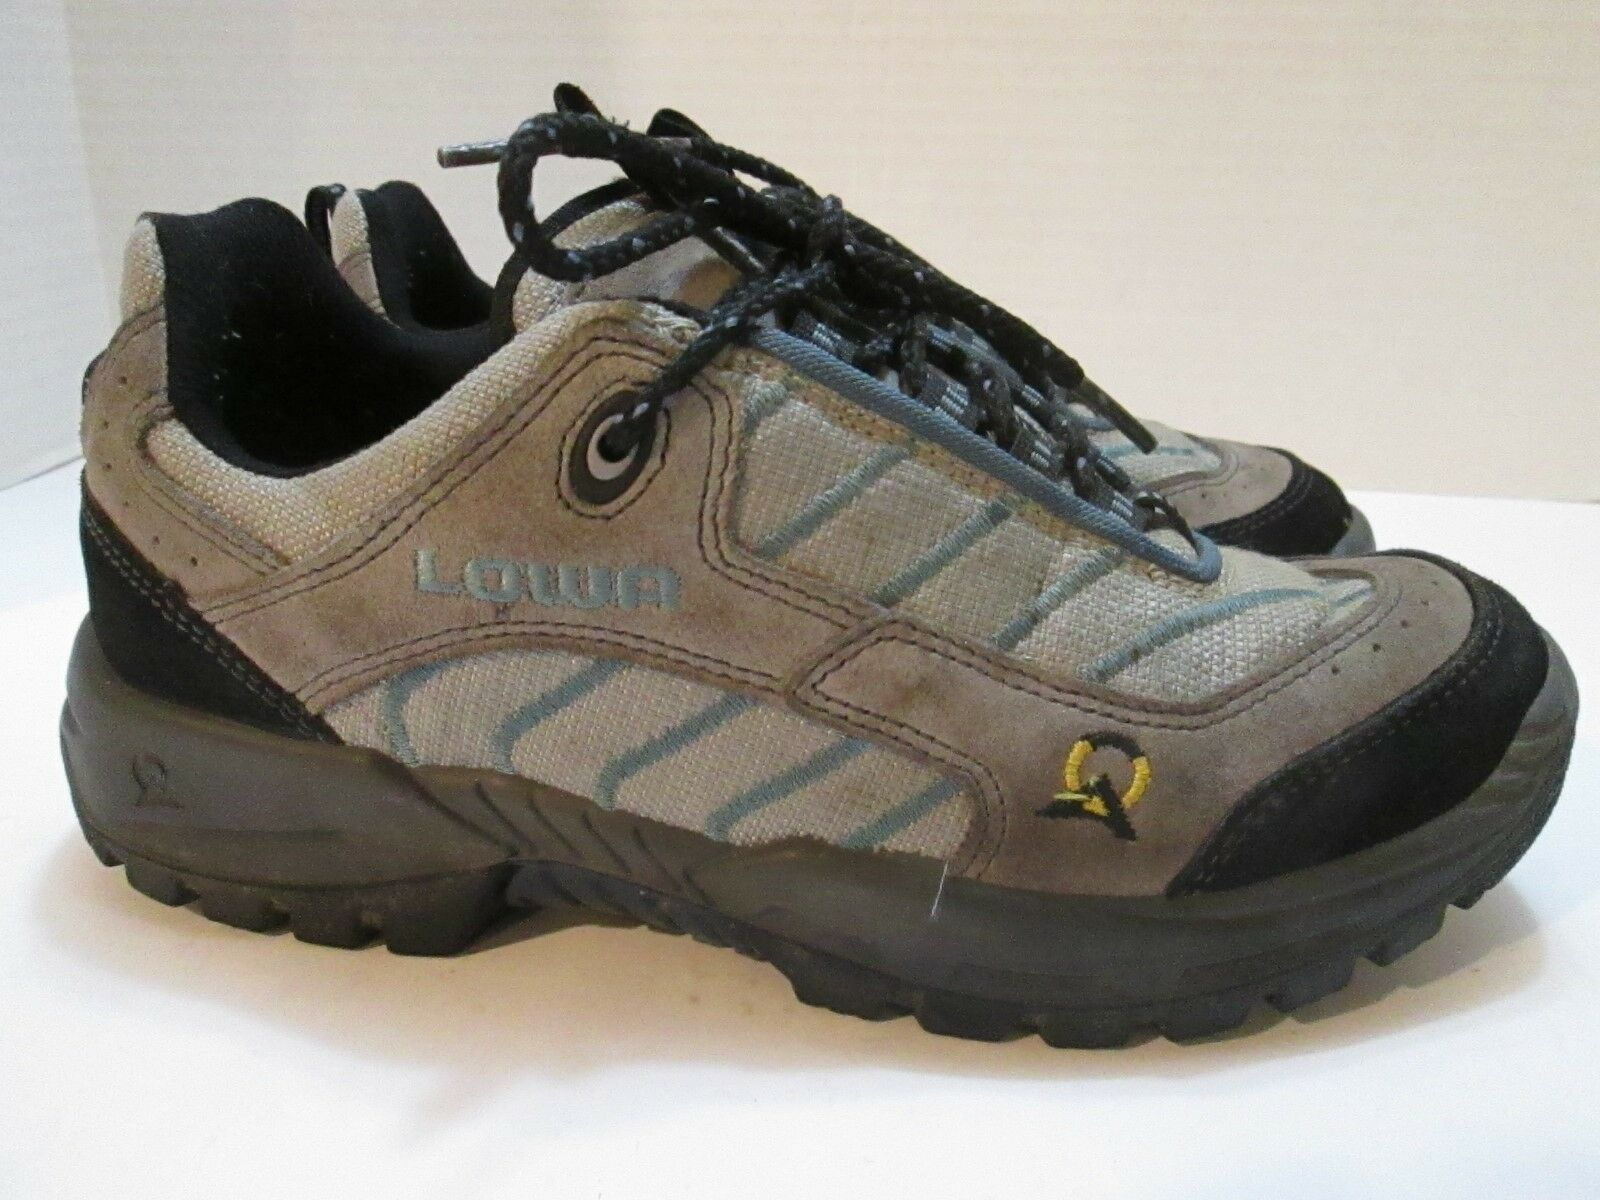 LOWA Women's G  bluee Hiking  shoes Boots Size 6.5  up to 65% off